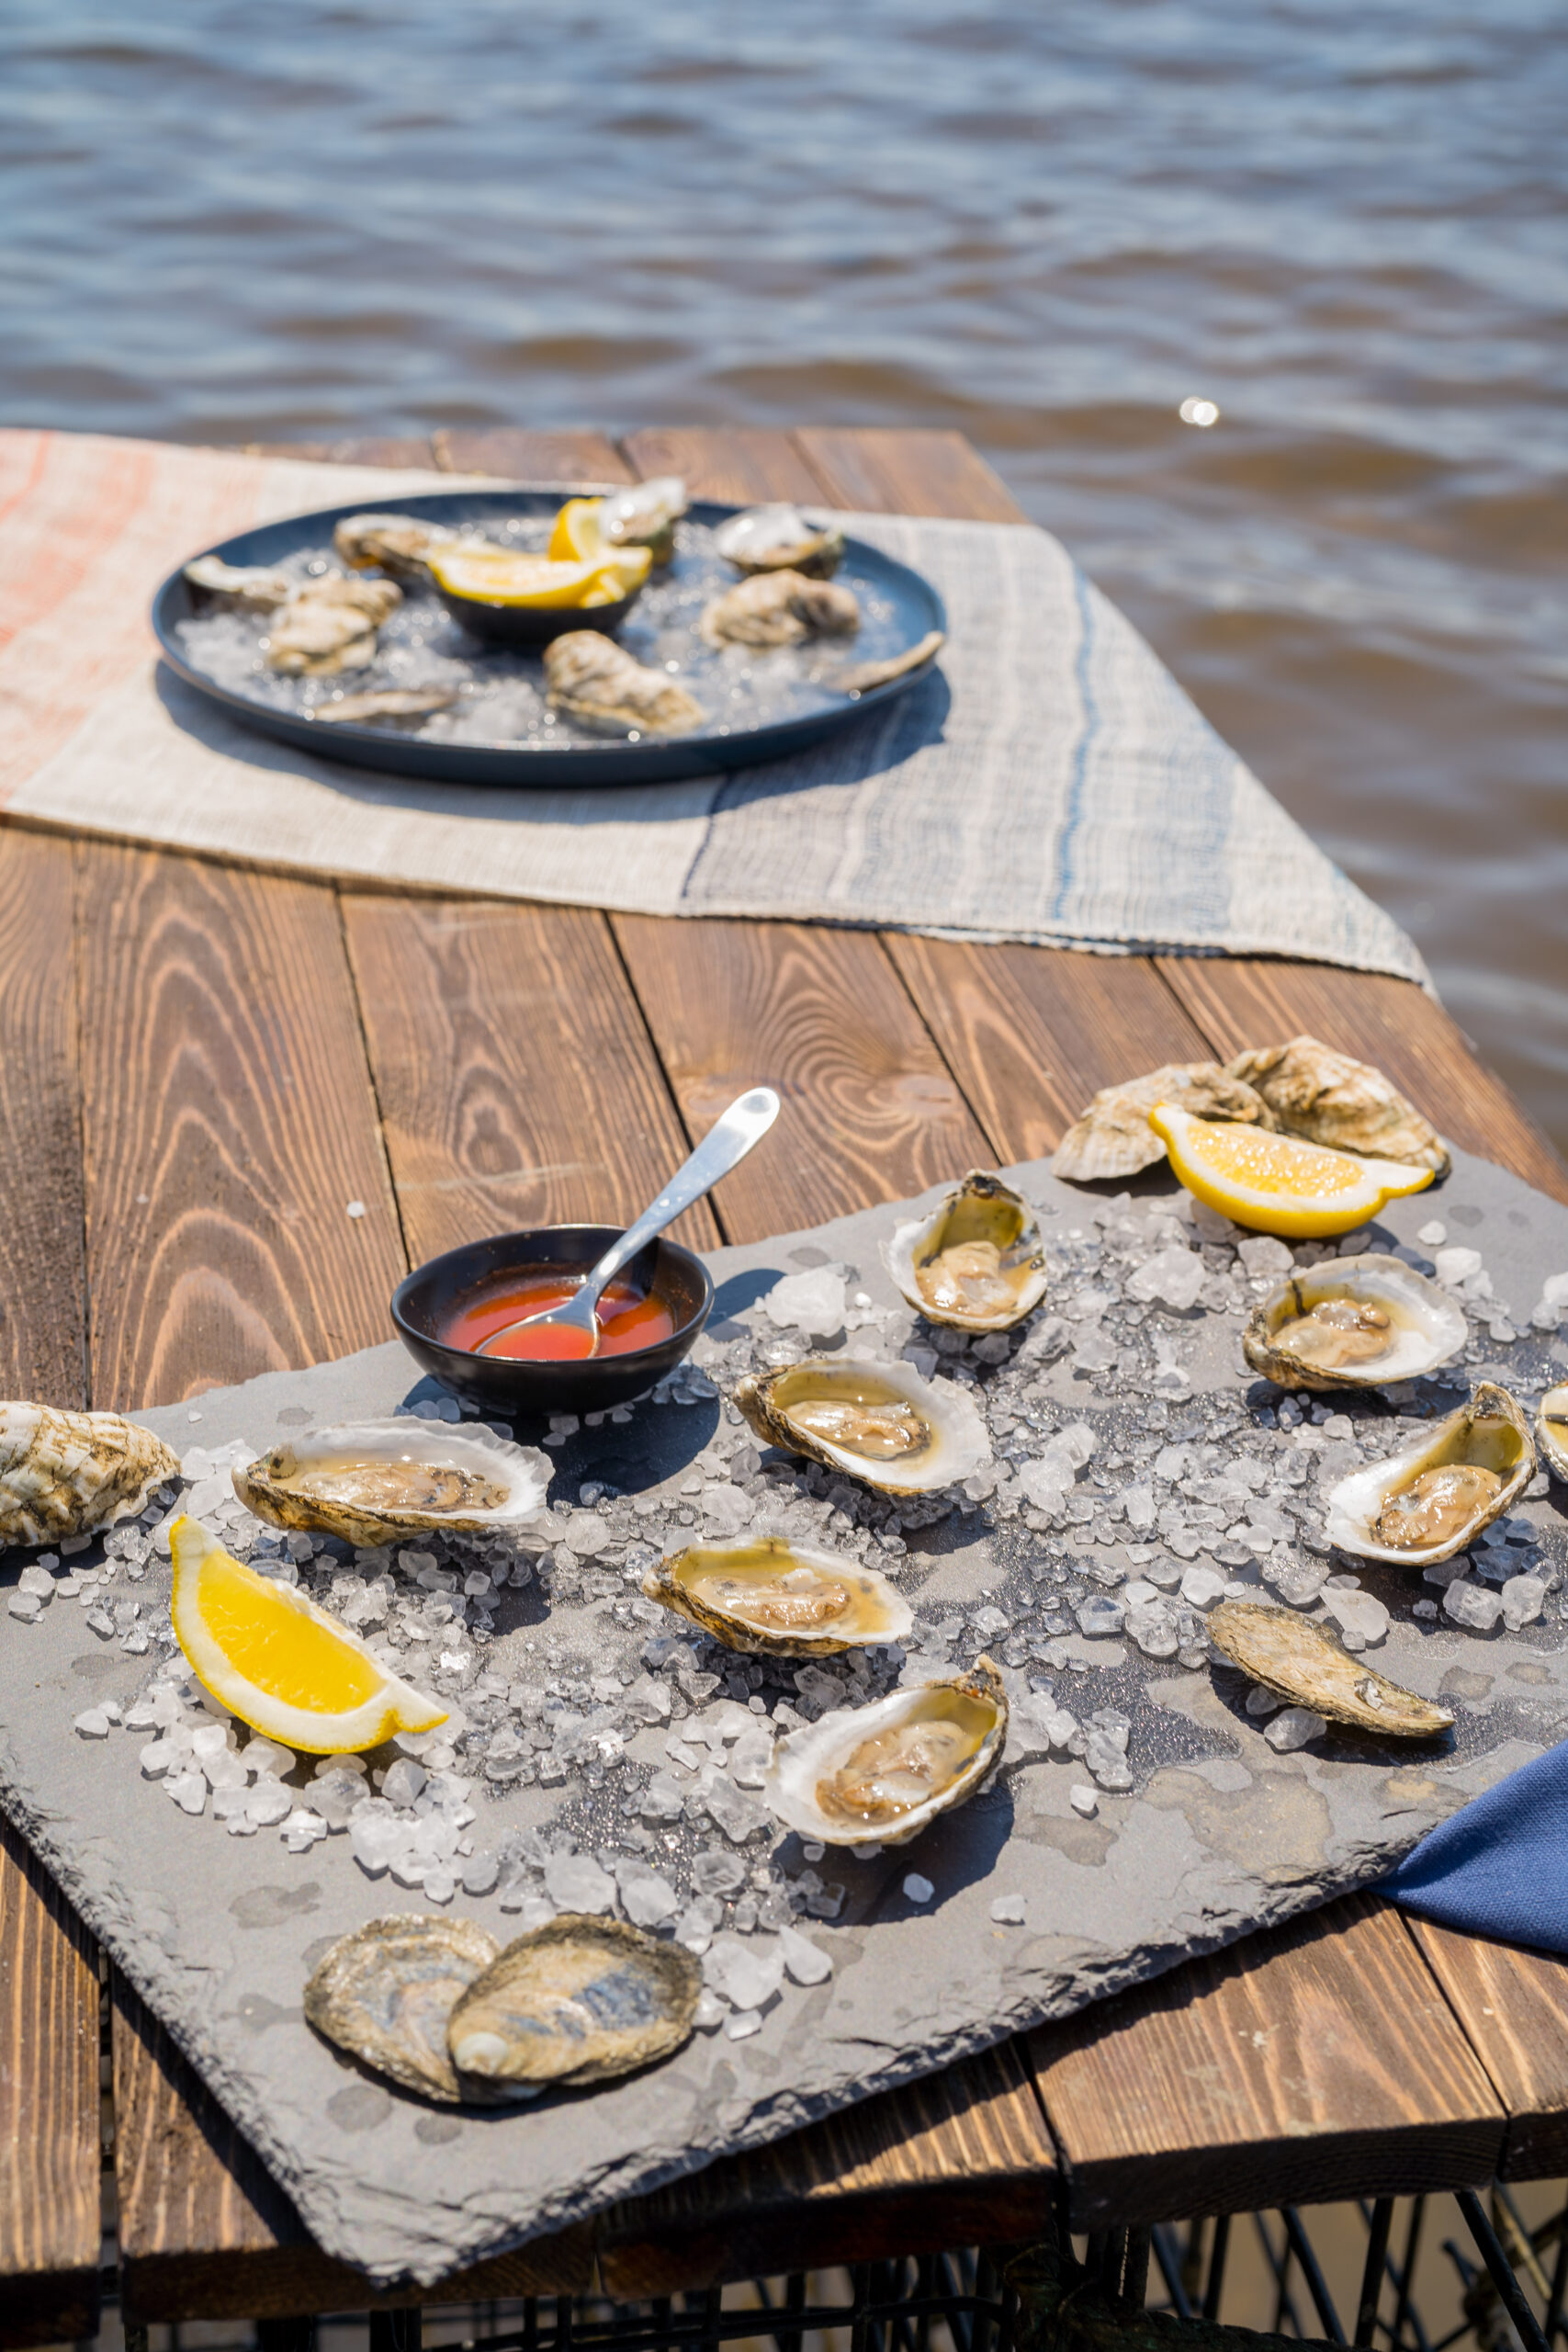 N.C. oysters on the half shell. Photo by Justin Kase Conder.